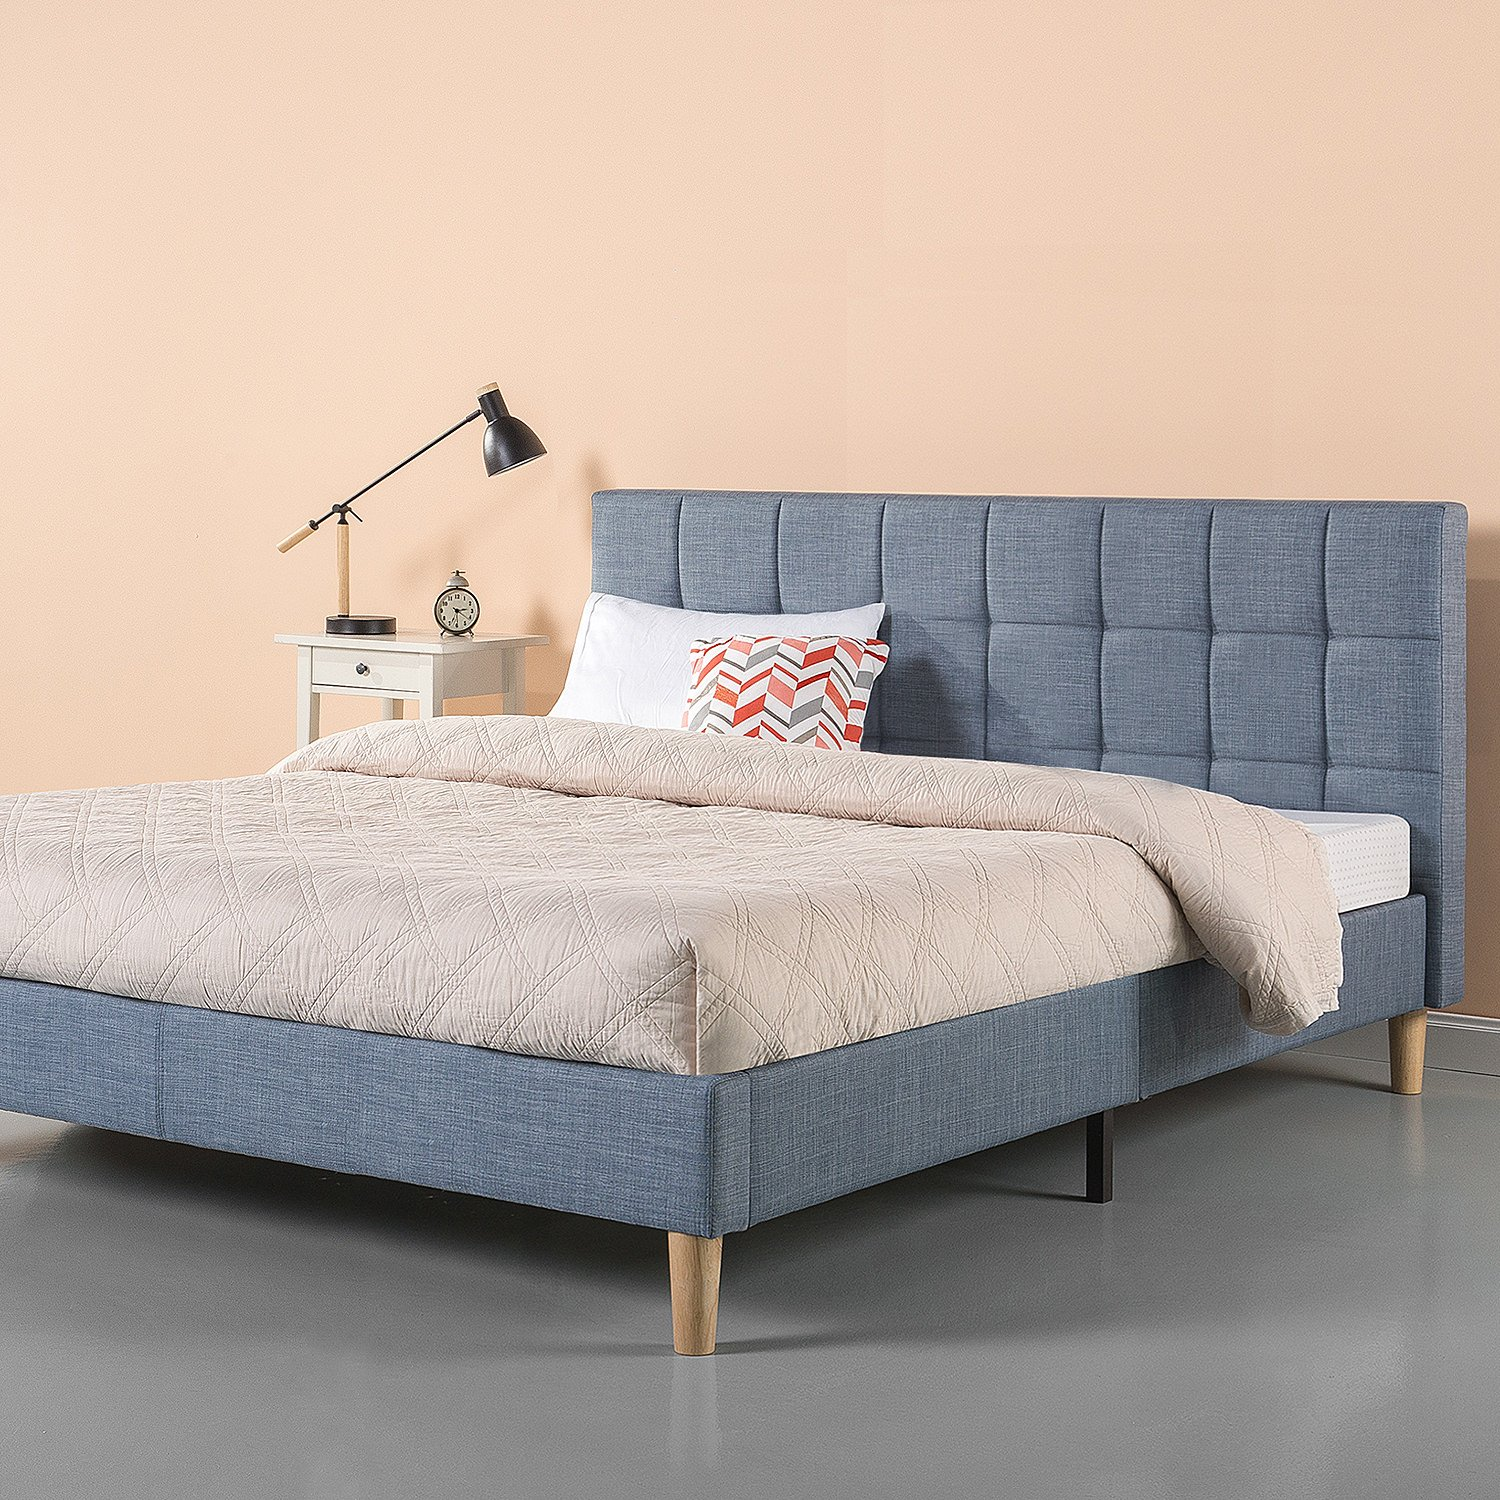 Zinus Lottie Upholstered Square Stitched Platform Bed / Mattress Foundation / Easy Assembly / Strong Wood Slat Support / Blue Slate, King by Zinus